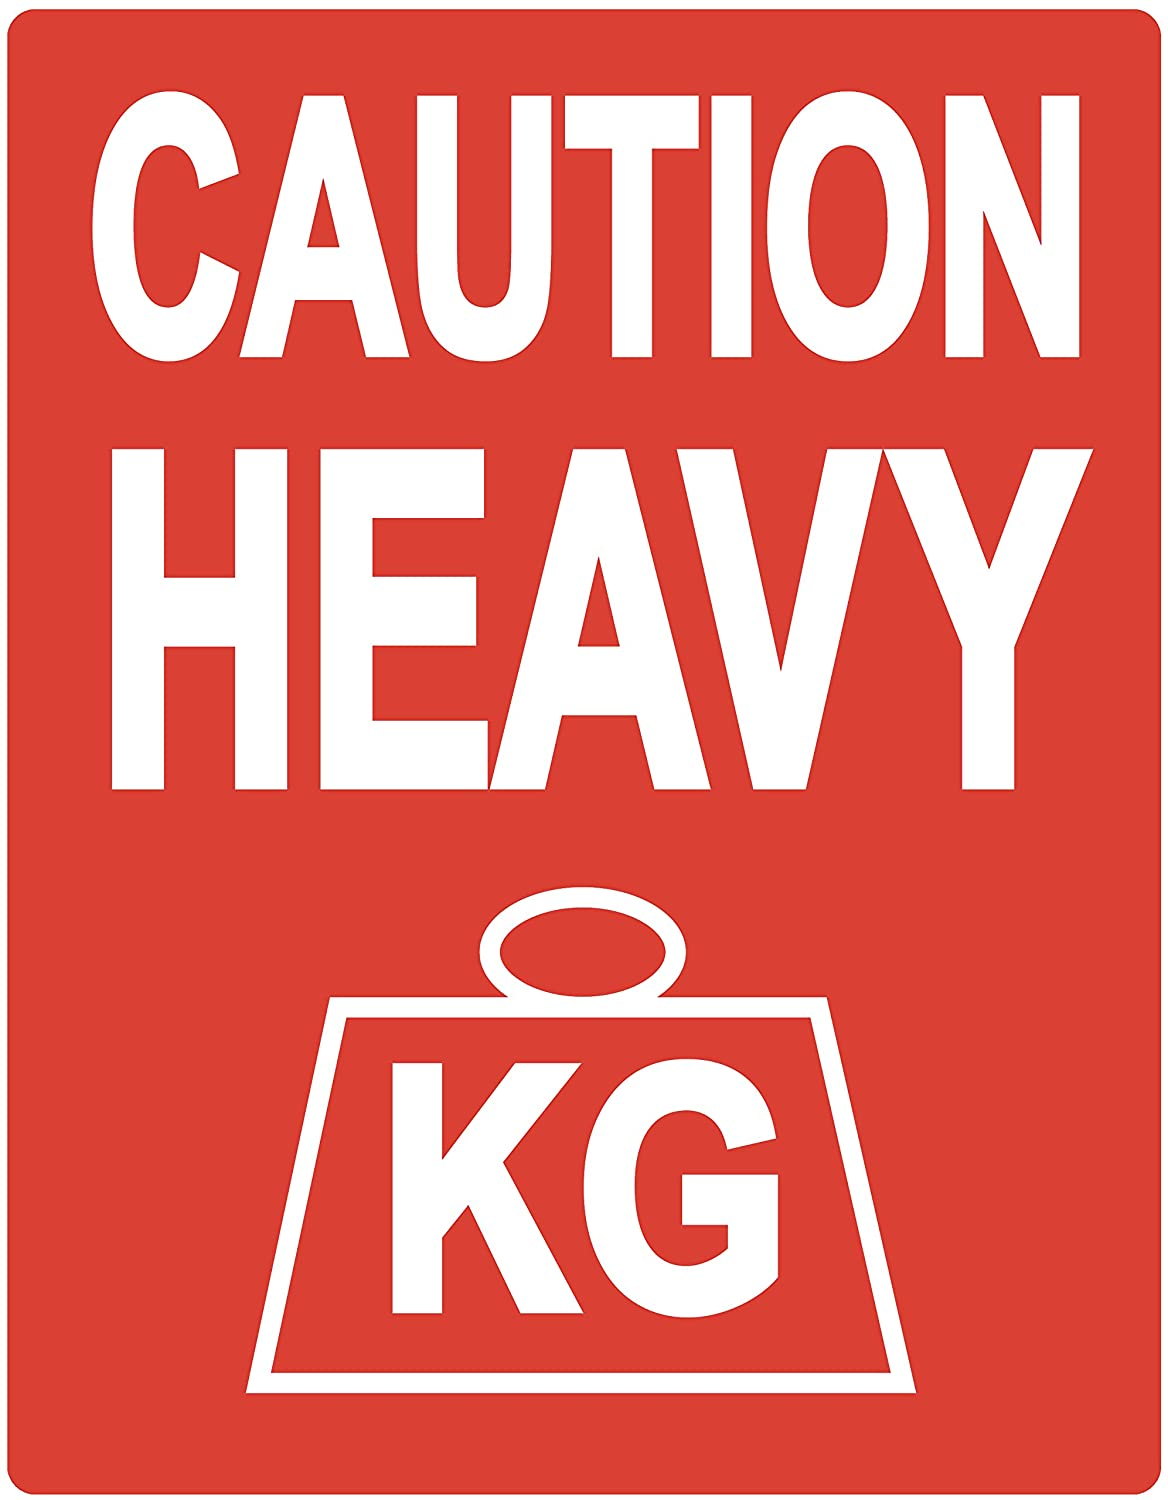 Pack of 'Caution Heavy' Packing Box Stickers / Sticky Labels 80 x 103mm rosso Audioprint Ltd